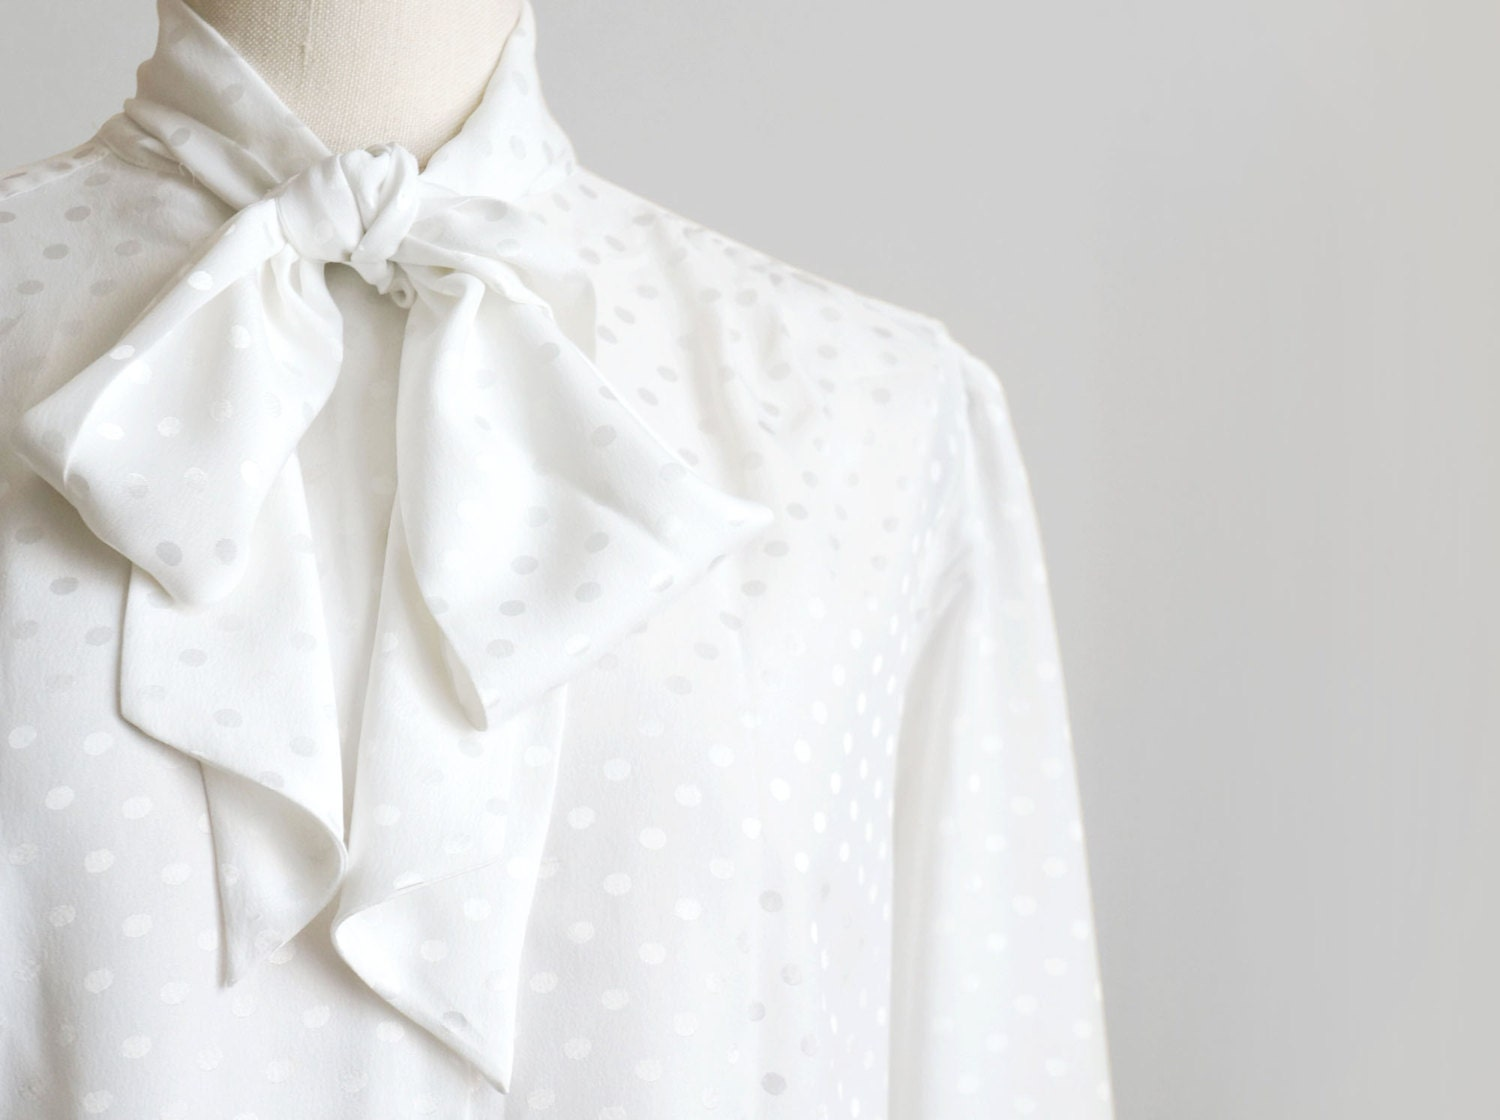 SALE Vintage womens white polka dot shirt in secretary style, white long sleeve geometric shirt with bow tie - plot